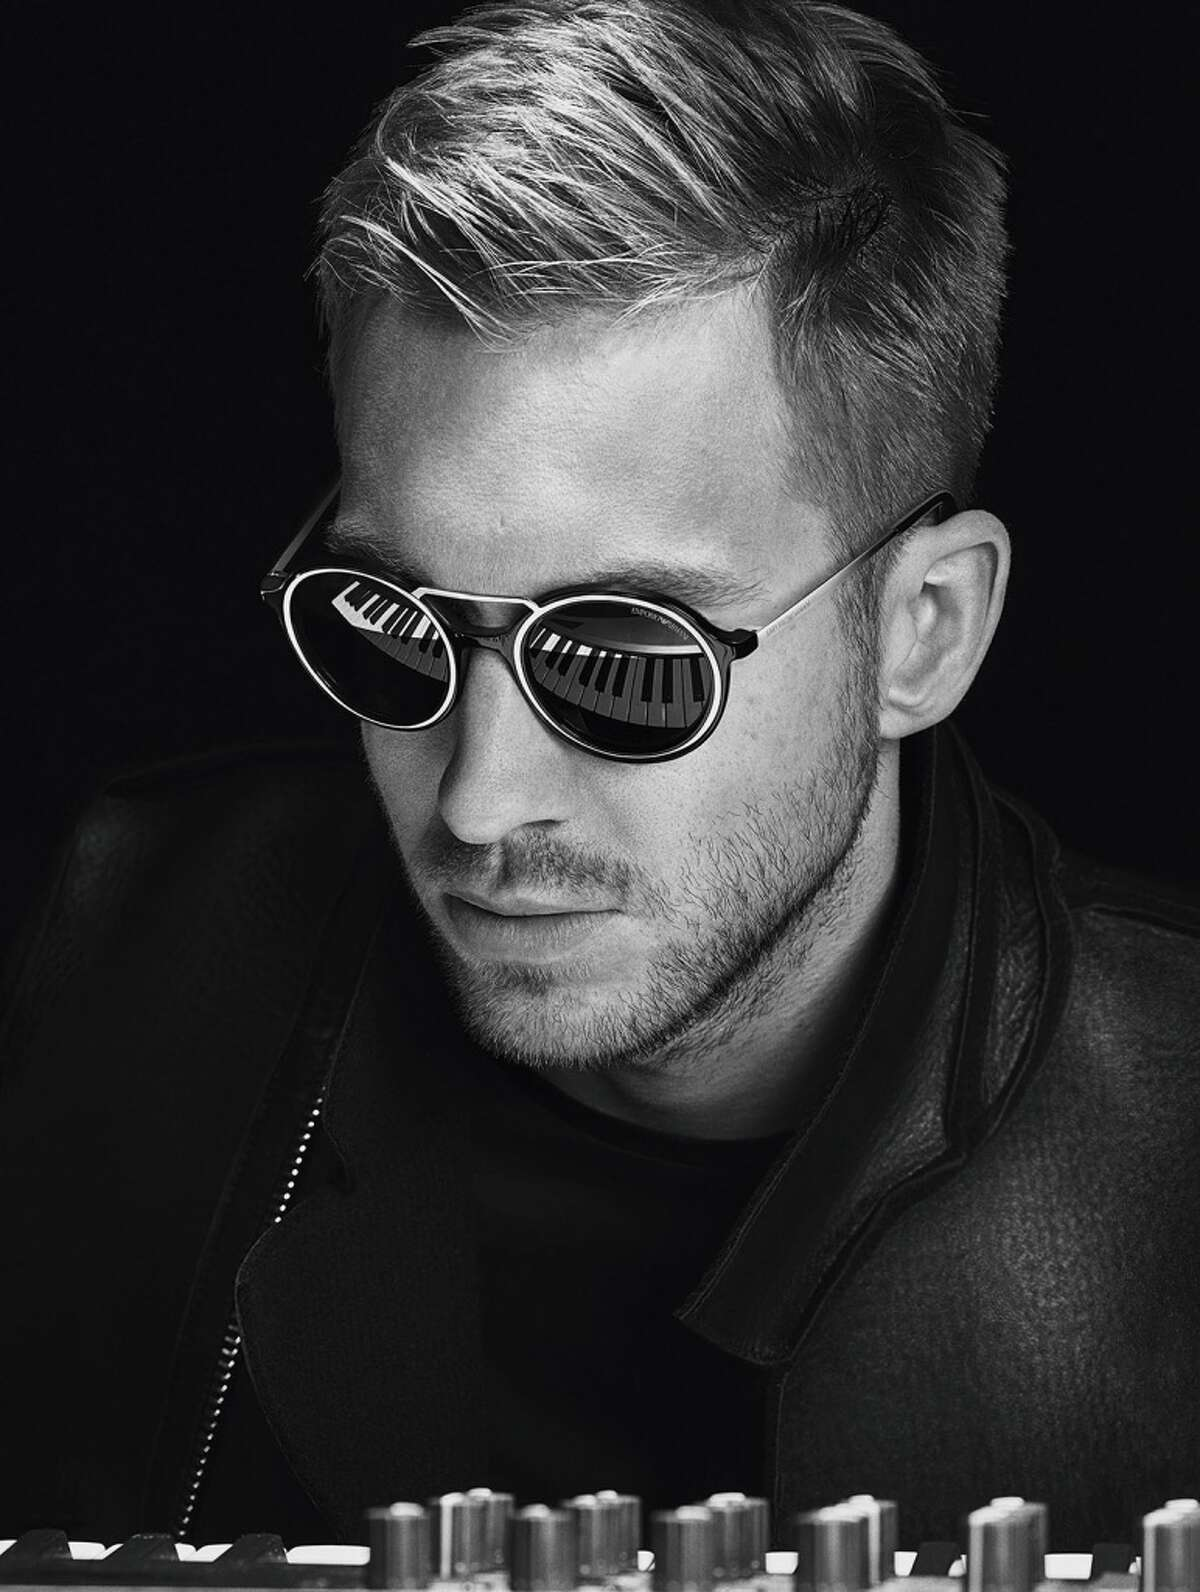 Calvin Harris models Emporio Armani eyewear. Harris, 31, who was named the world's highest paid DJ in 2014 earning $66 million, is the brand's model for its fall 2015/16 campaign.